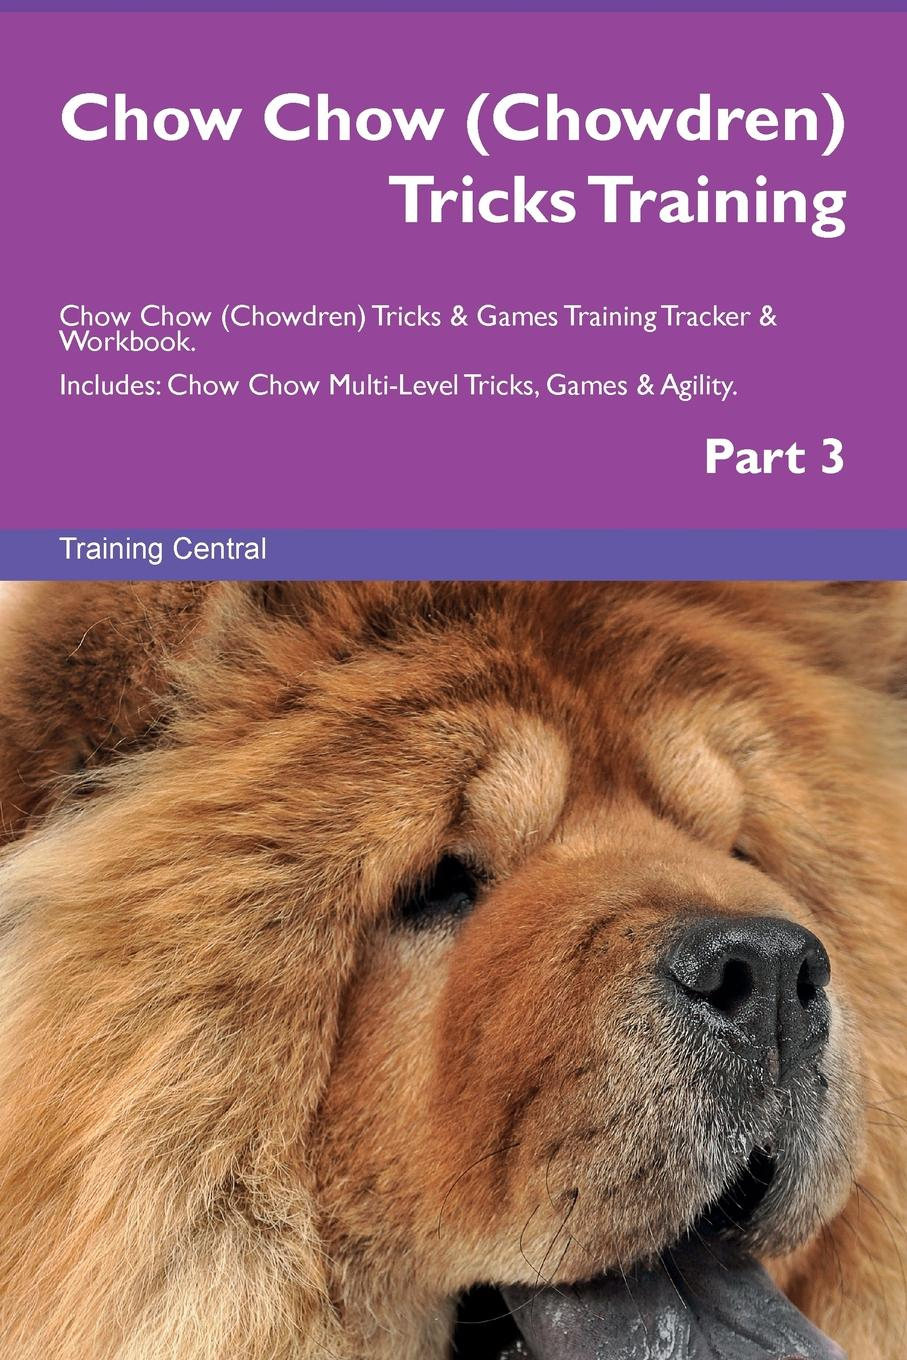 Training Central Chow Chow (Chowdren) Tricks Training Chow Chow (Chowdren) Tricks . Games Training Tracker . Workbook. Includes. Chow Chow Multi-Level Tricks, Games . Agility. Part 3 this book loves you